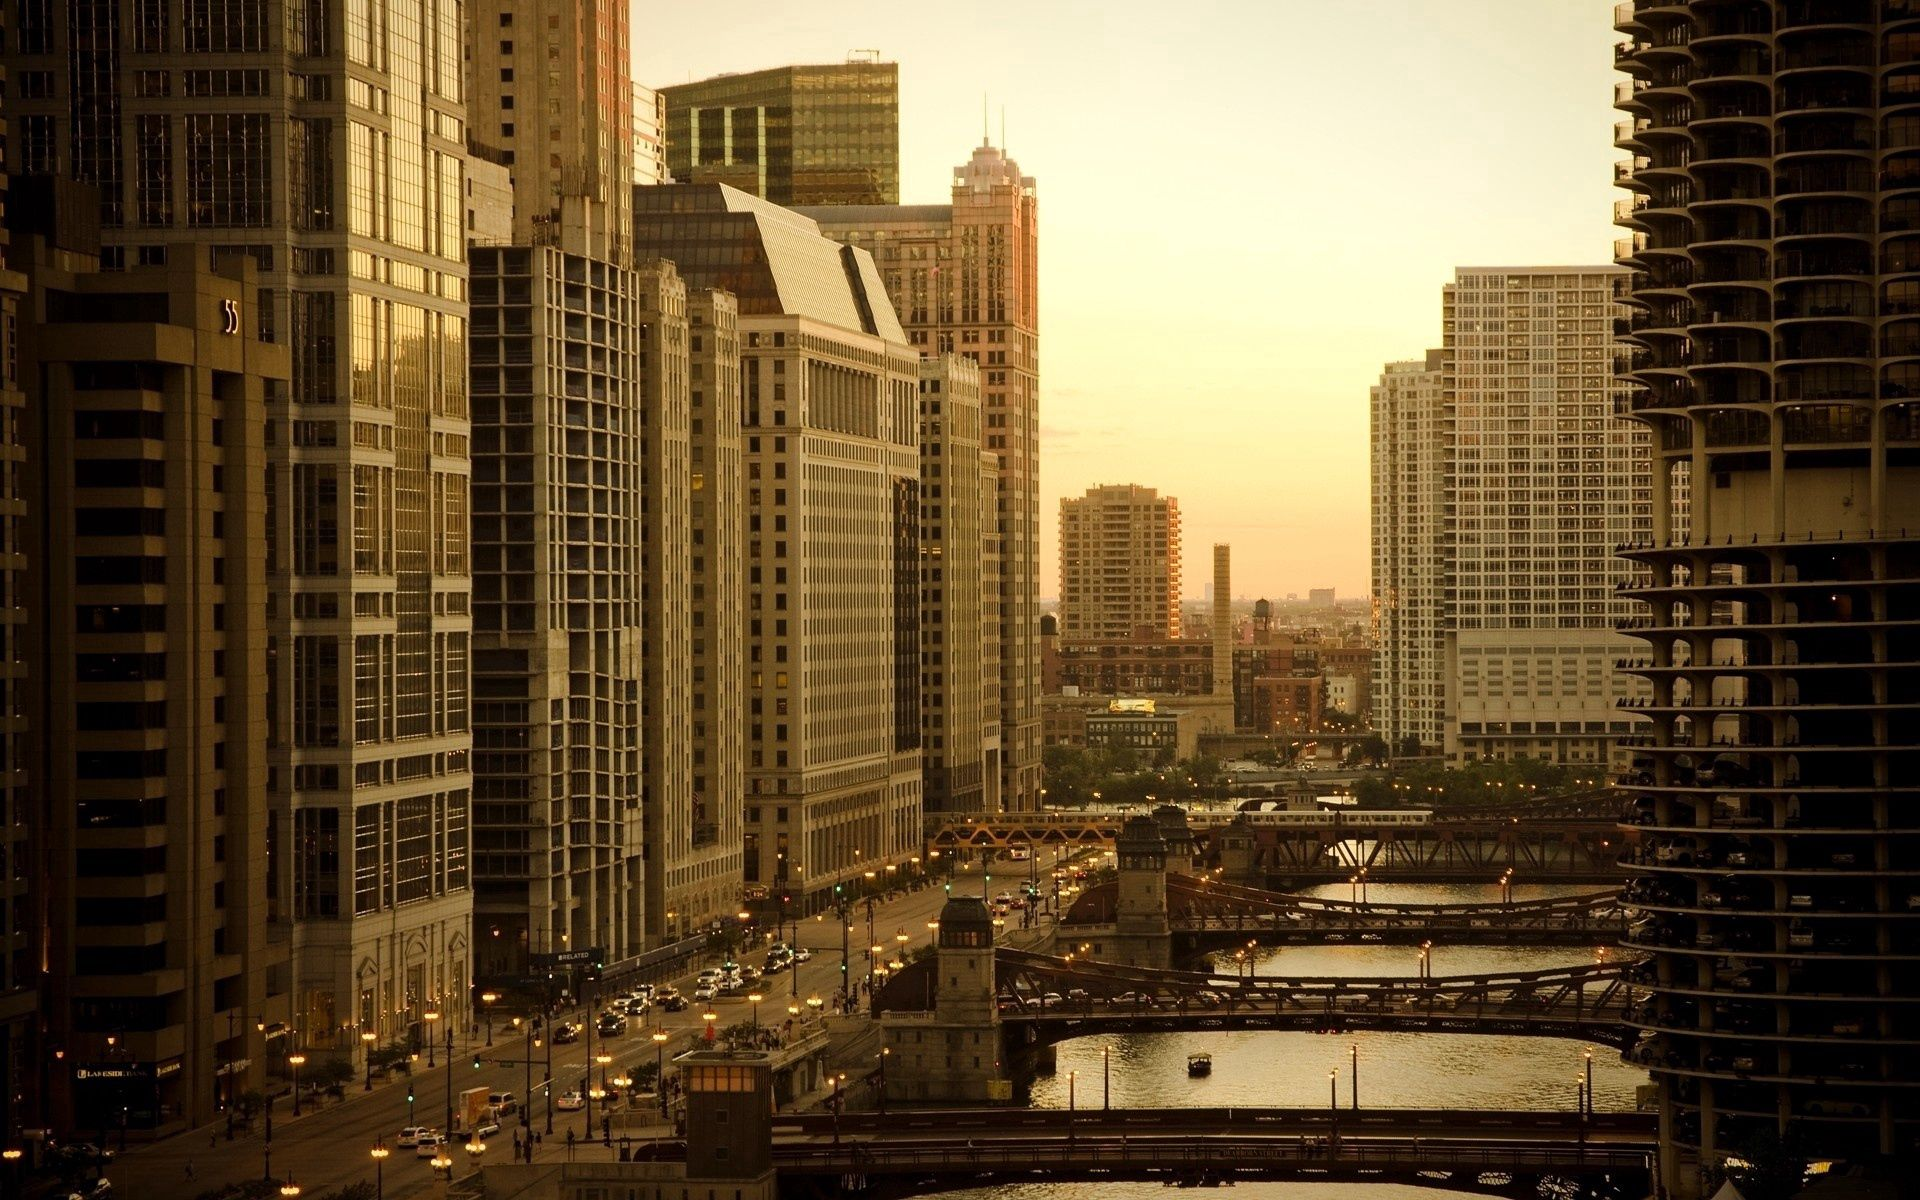 140357 download wallpaper Cities, Houses, Bridges, Sky, City, Skyscrapers screensavers and pictures for free